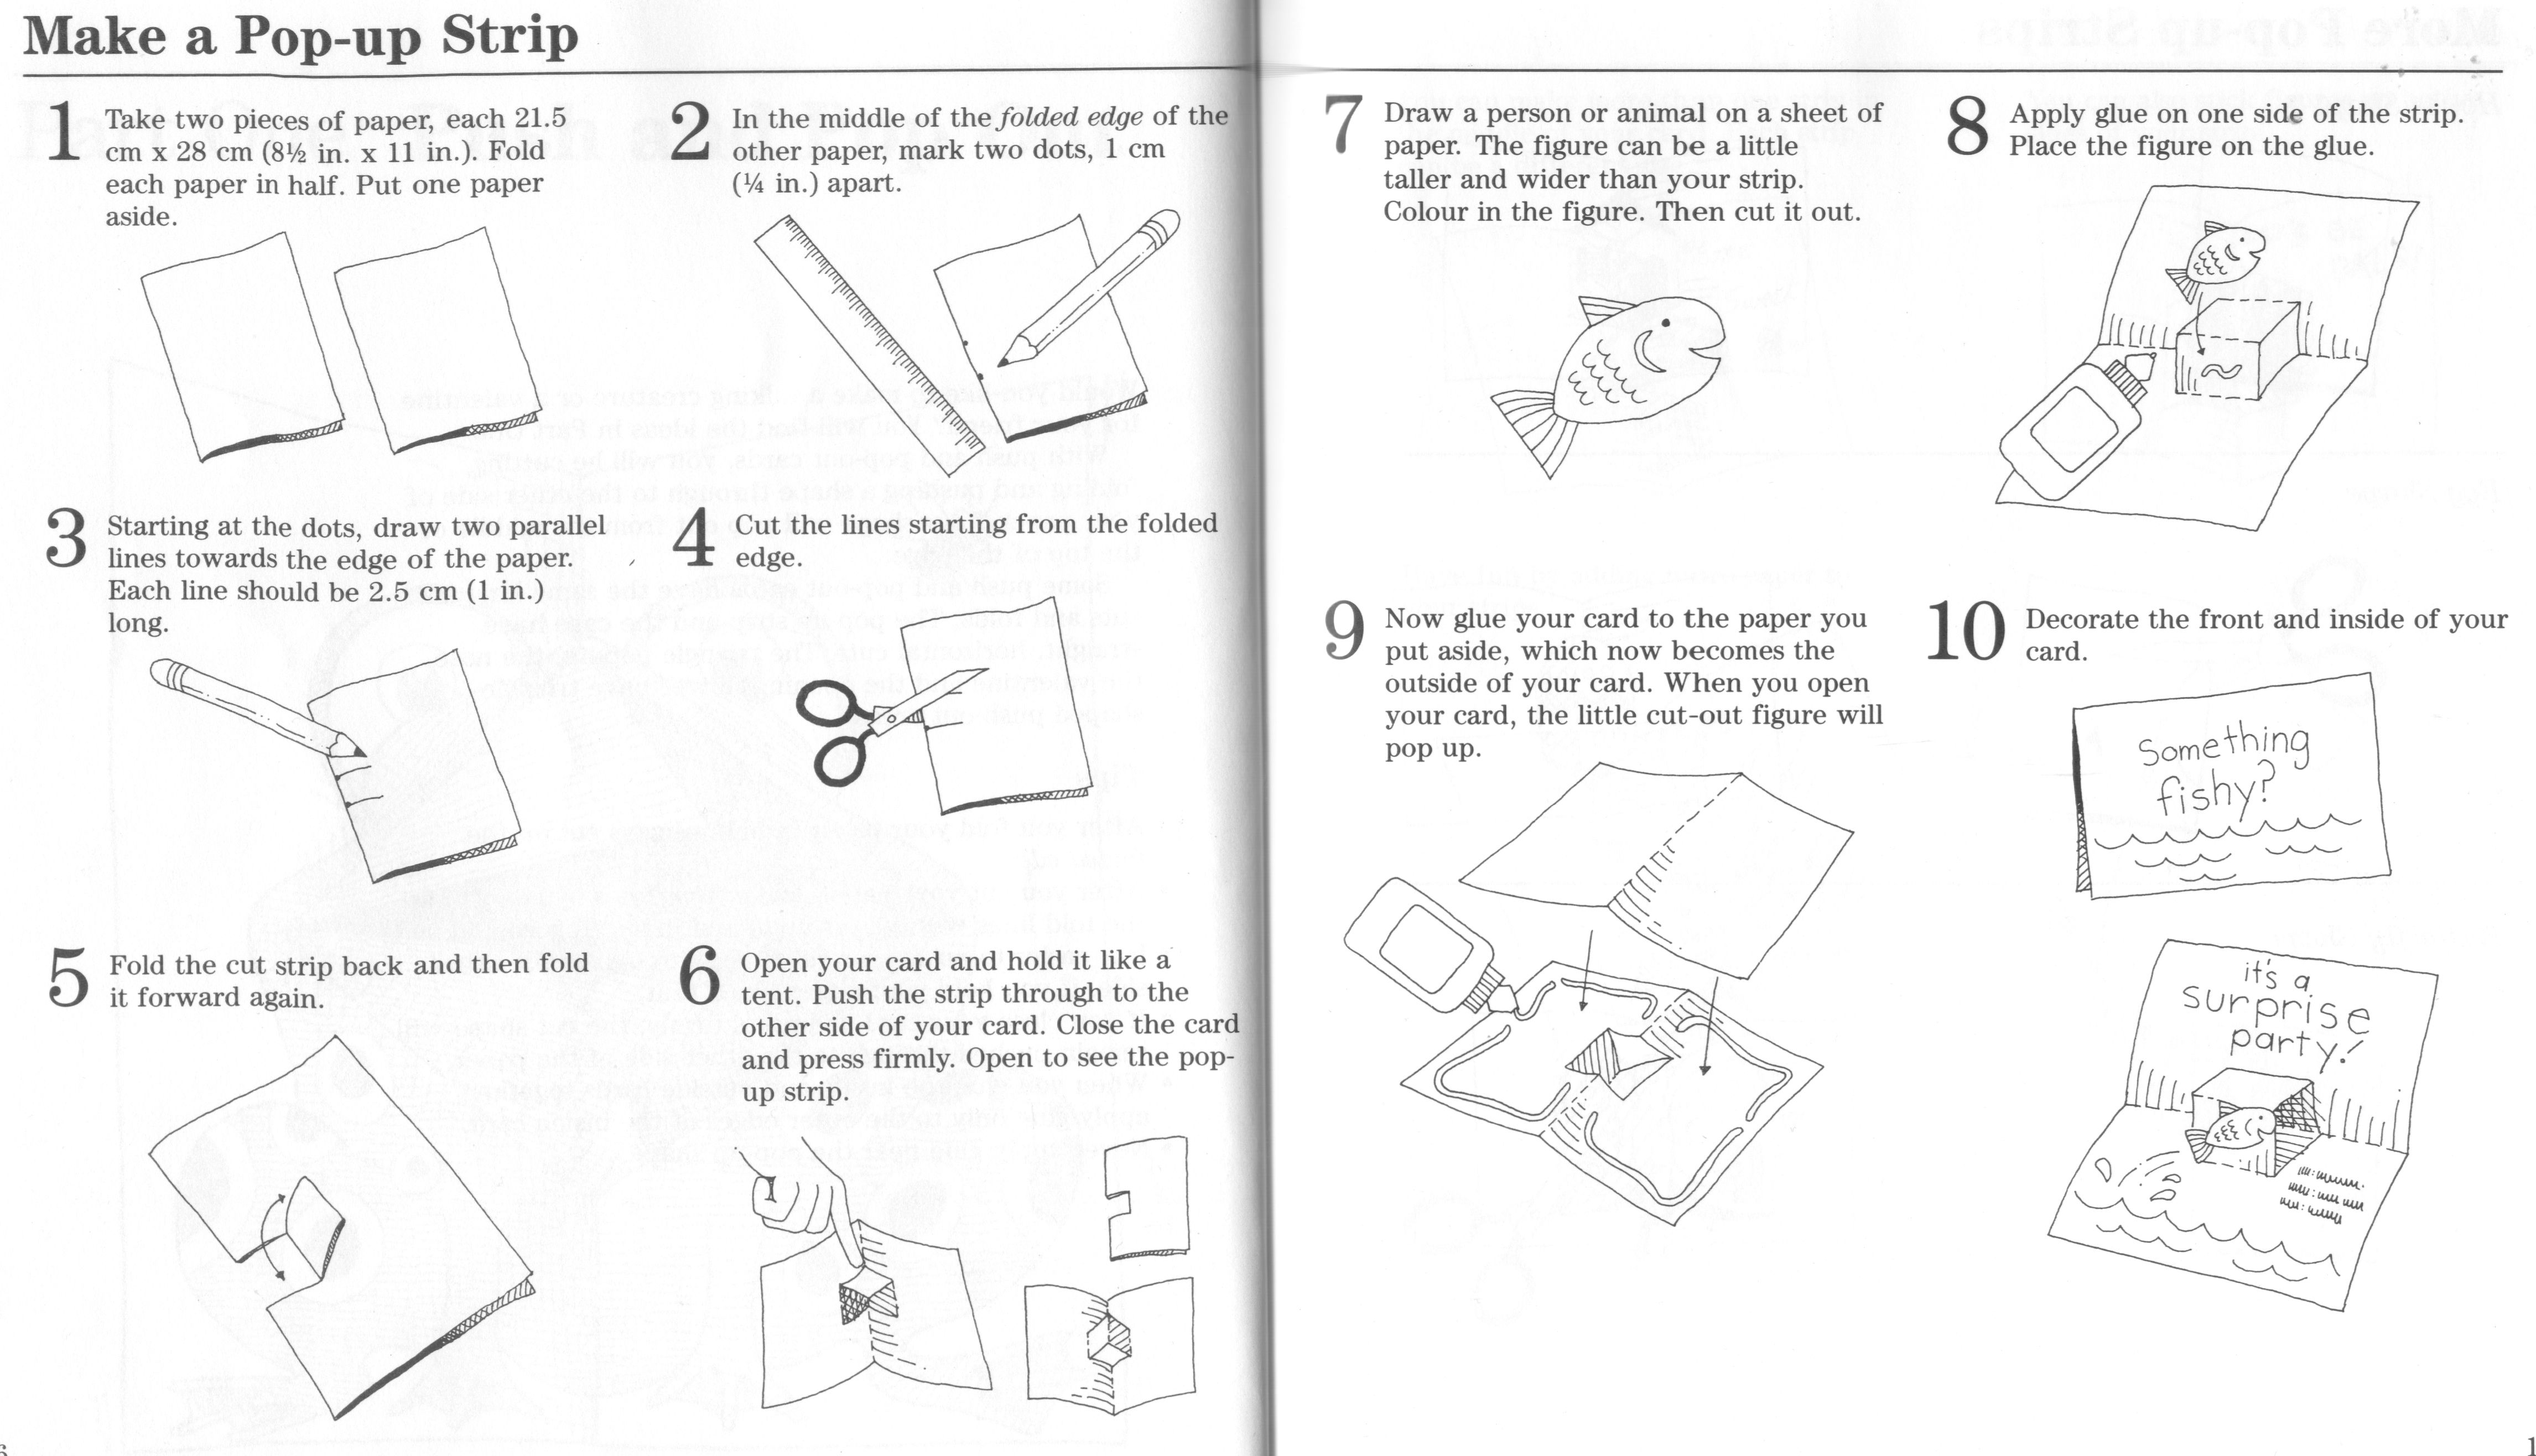 Books On Card Making Part - 31: Your Beginneru0027s Guide To Making Pop-Up Books And Cards